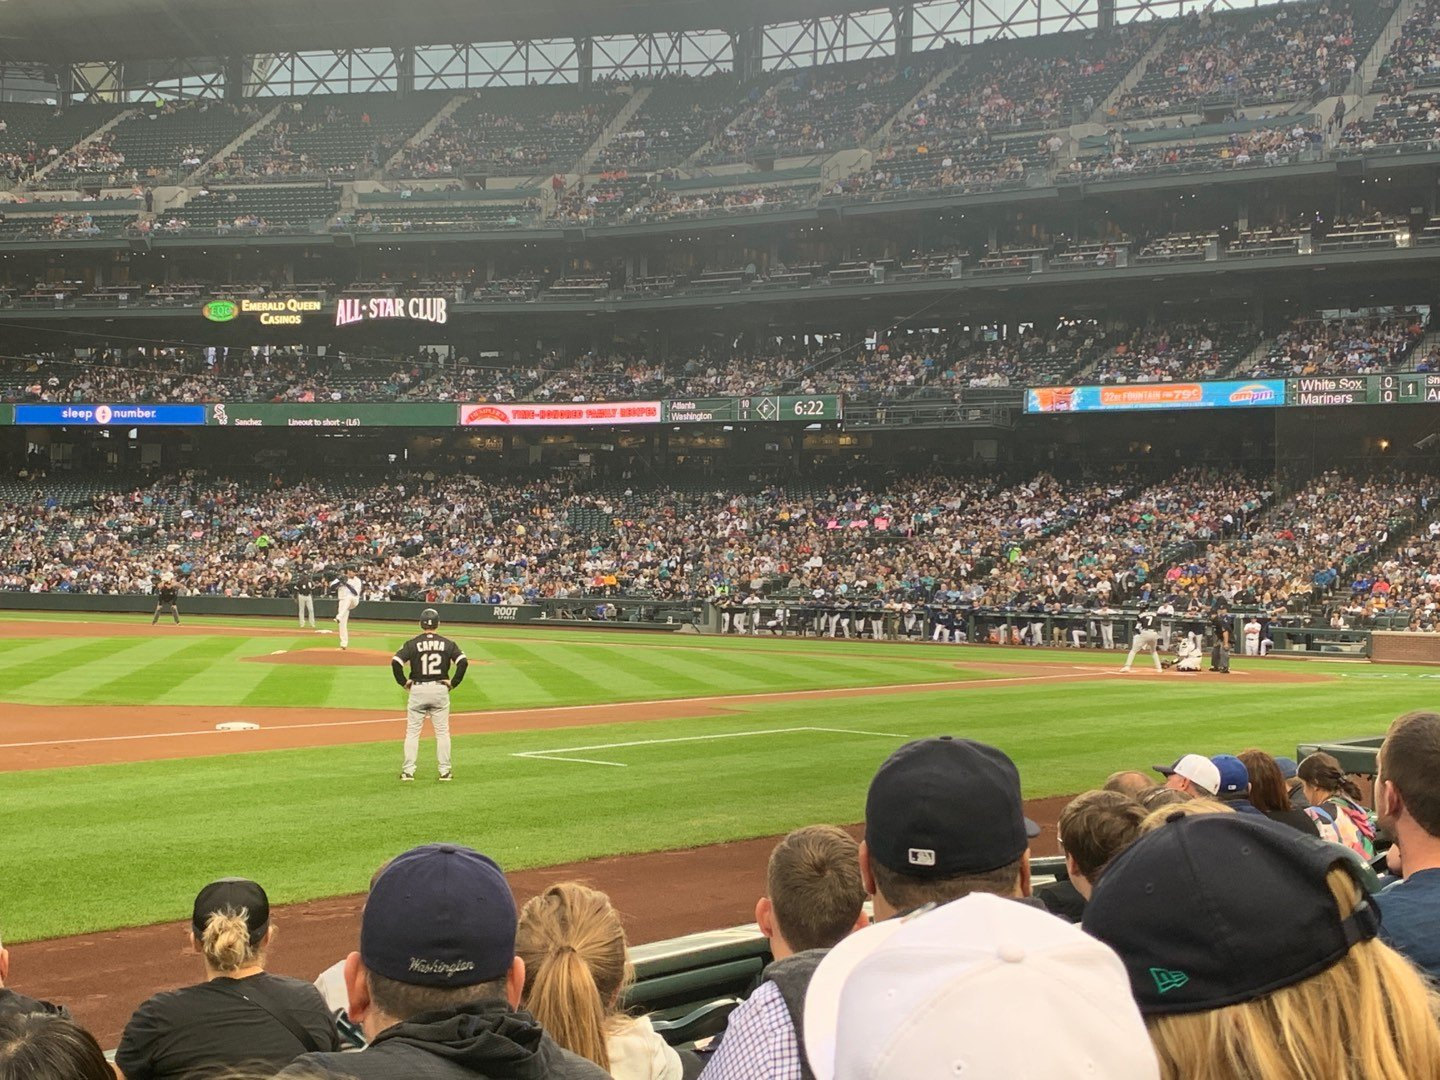 T-Mobile Park Section 141 Row 6 Seat 11